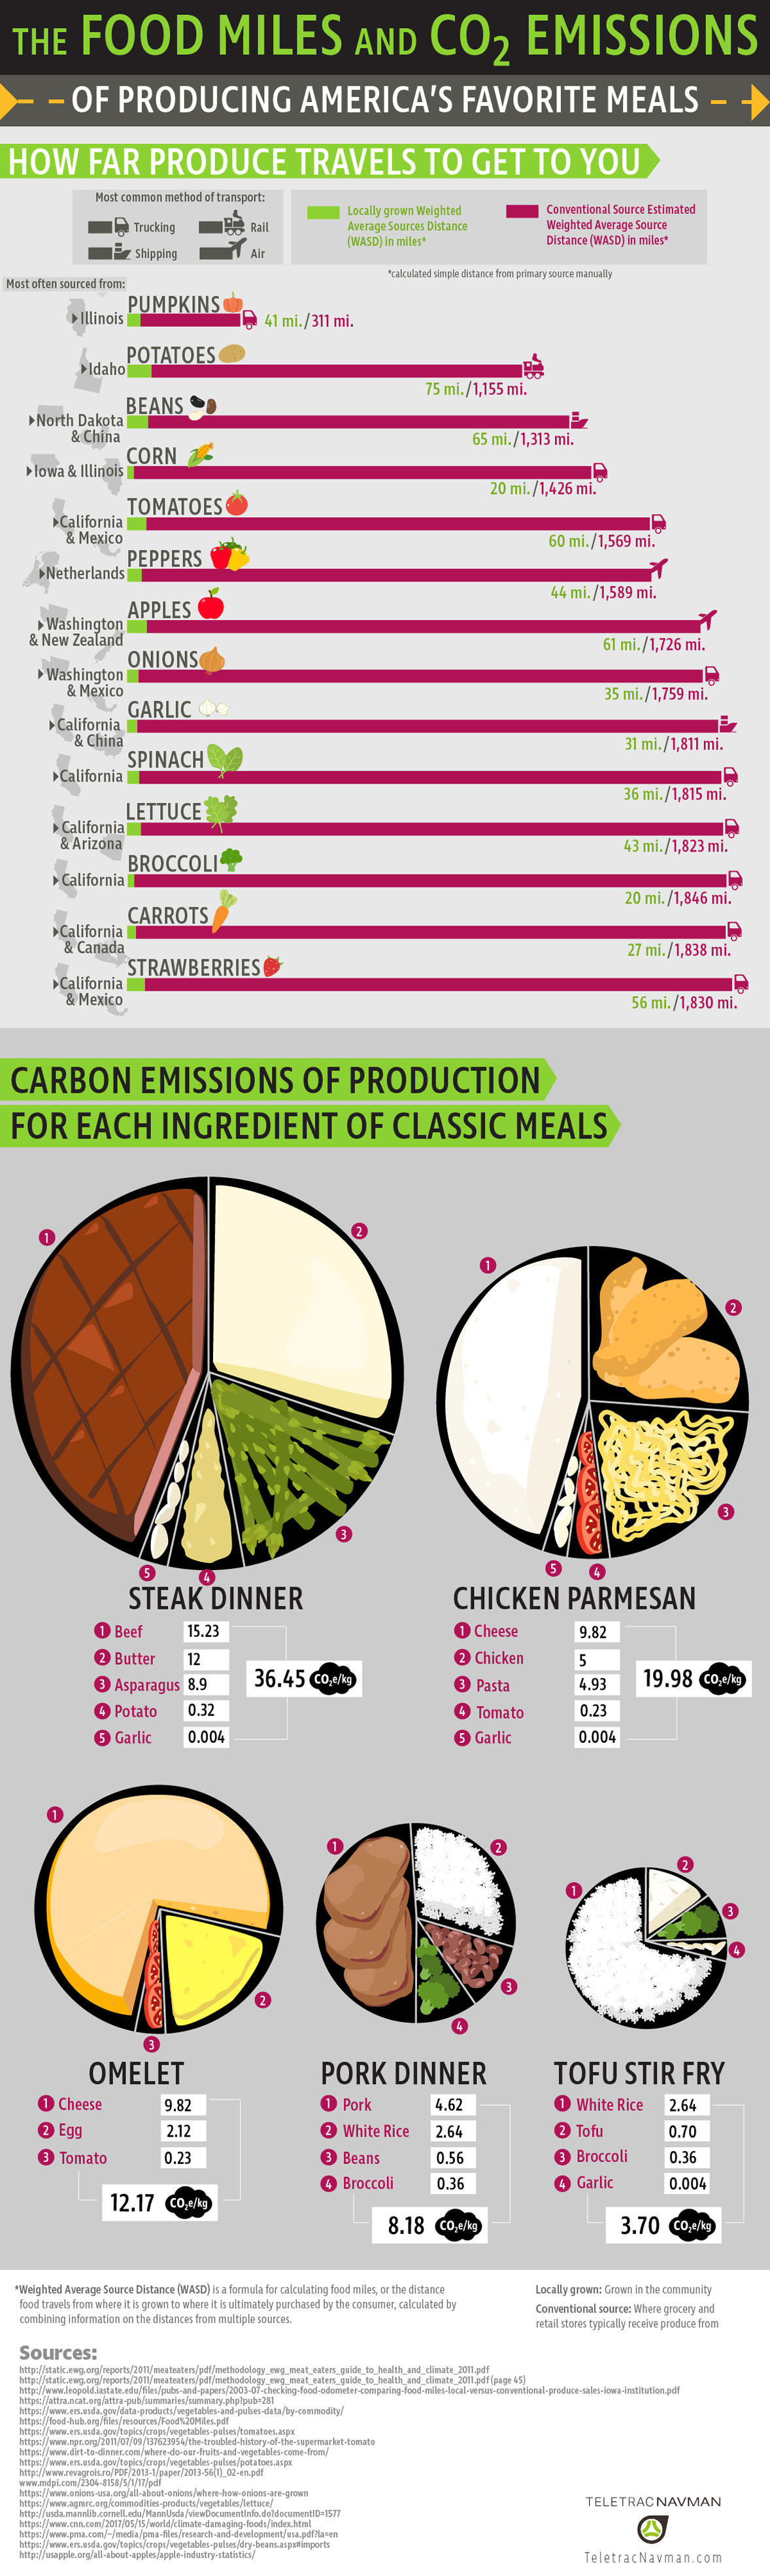 The Food Miles and CO2 Emissions of American Foods - TeletracNavman.com Infographic